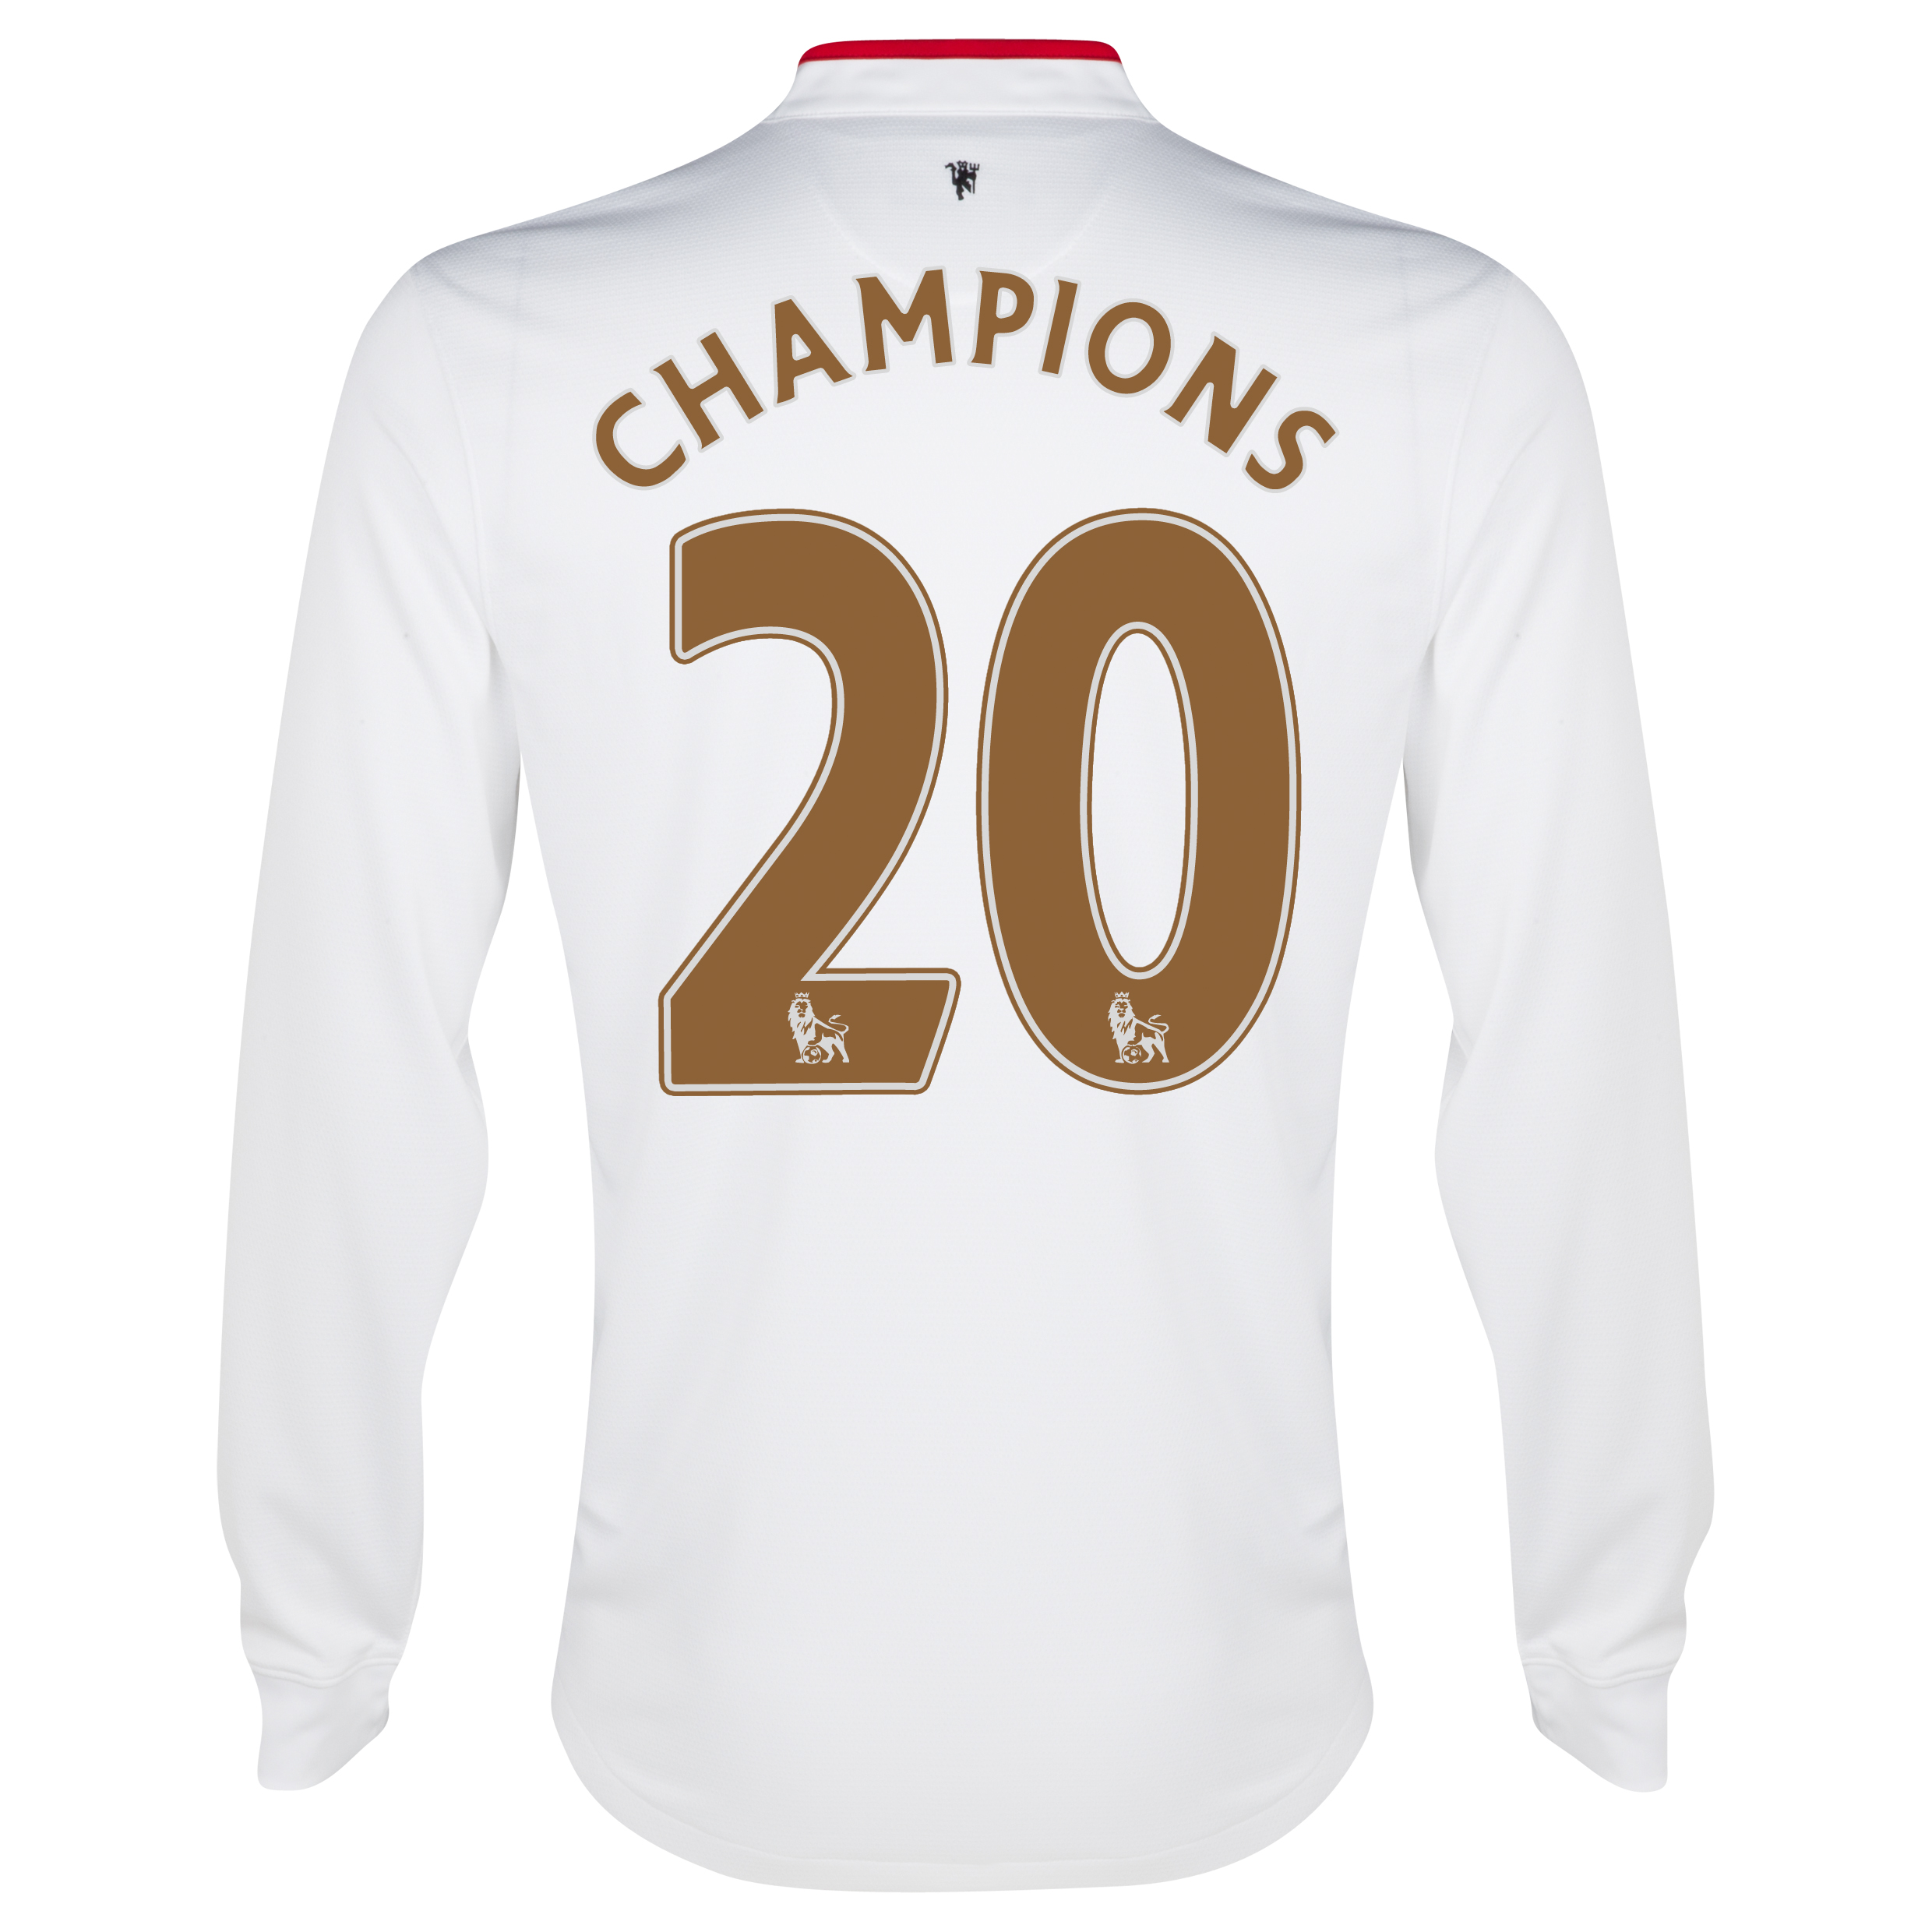 Manchester United Away Shirt 2012/13 - Long Sleeved - Kids with Champions 20 printing